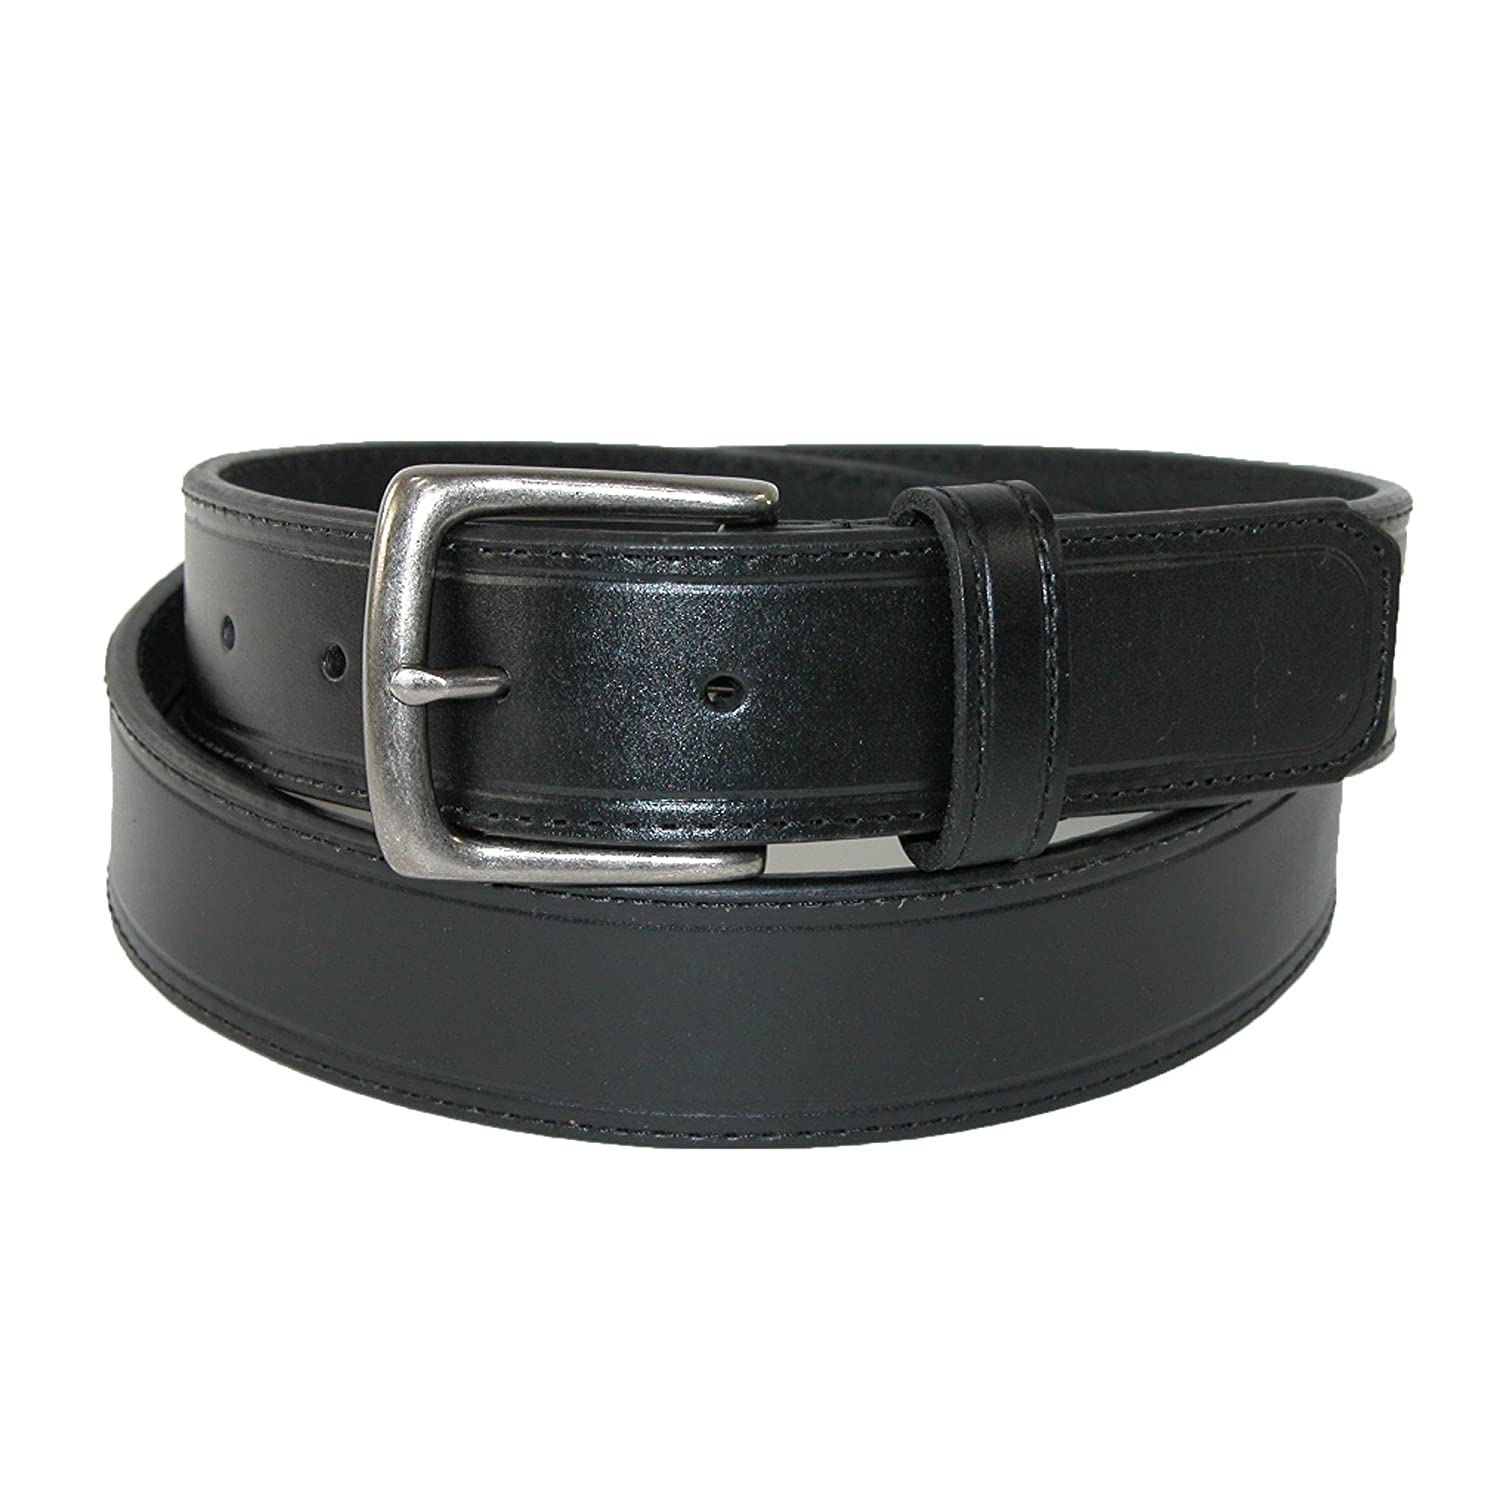 42 Sharp Mens Leather 1 1//4 Inch Casual Security Money Belt Black